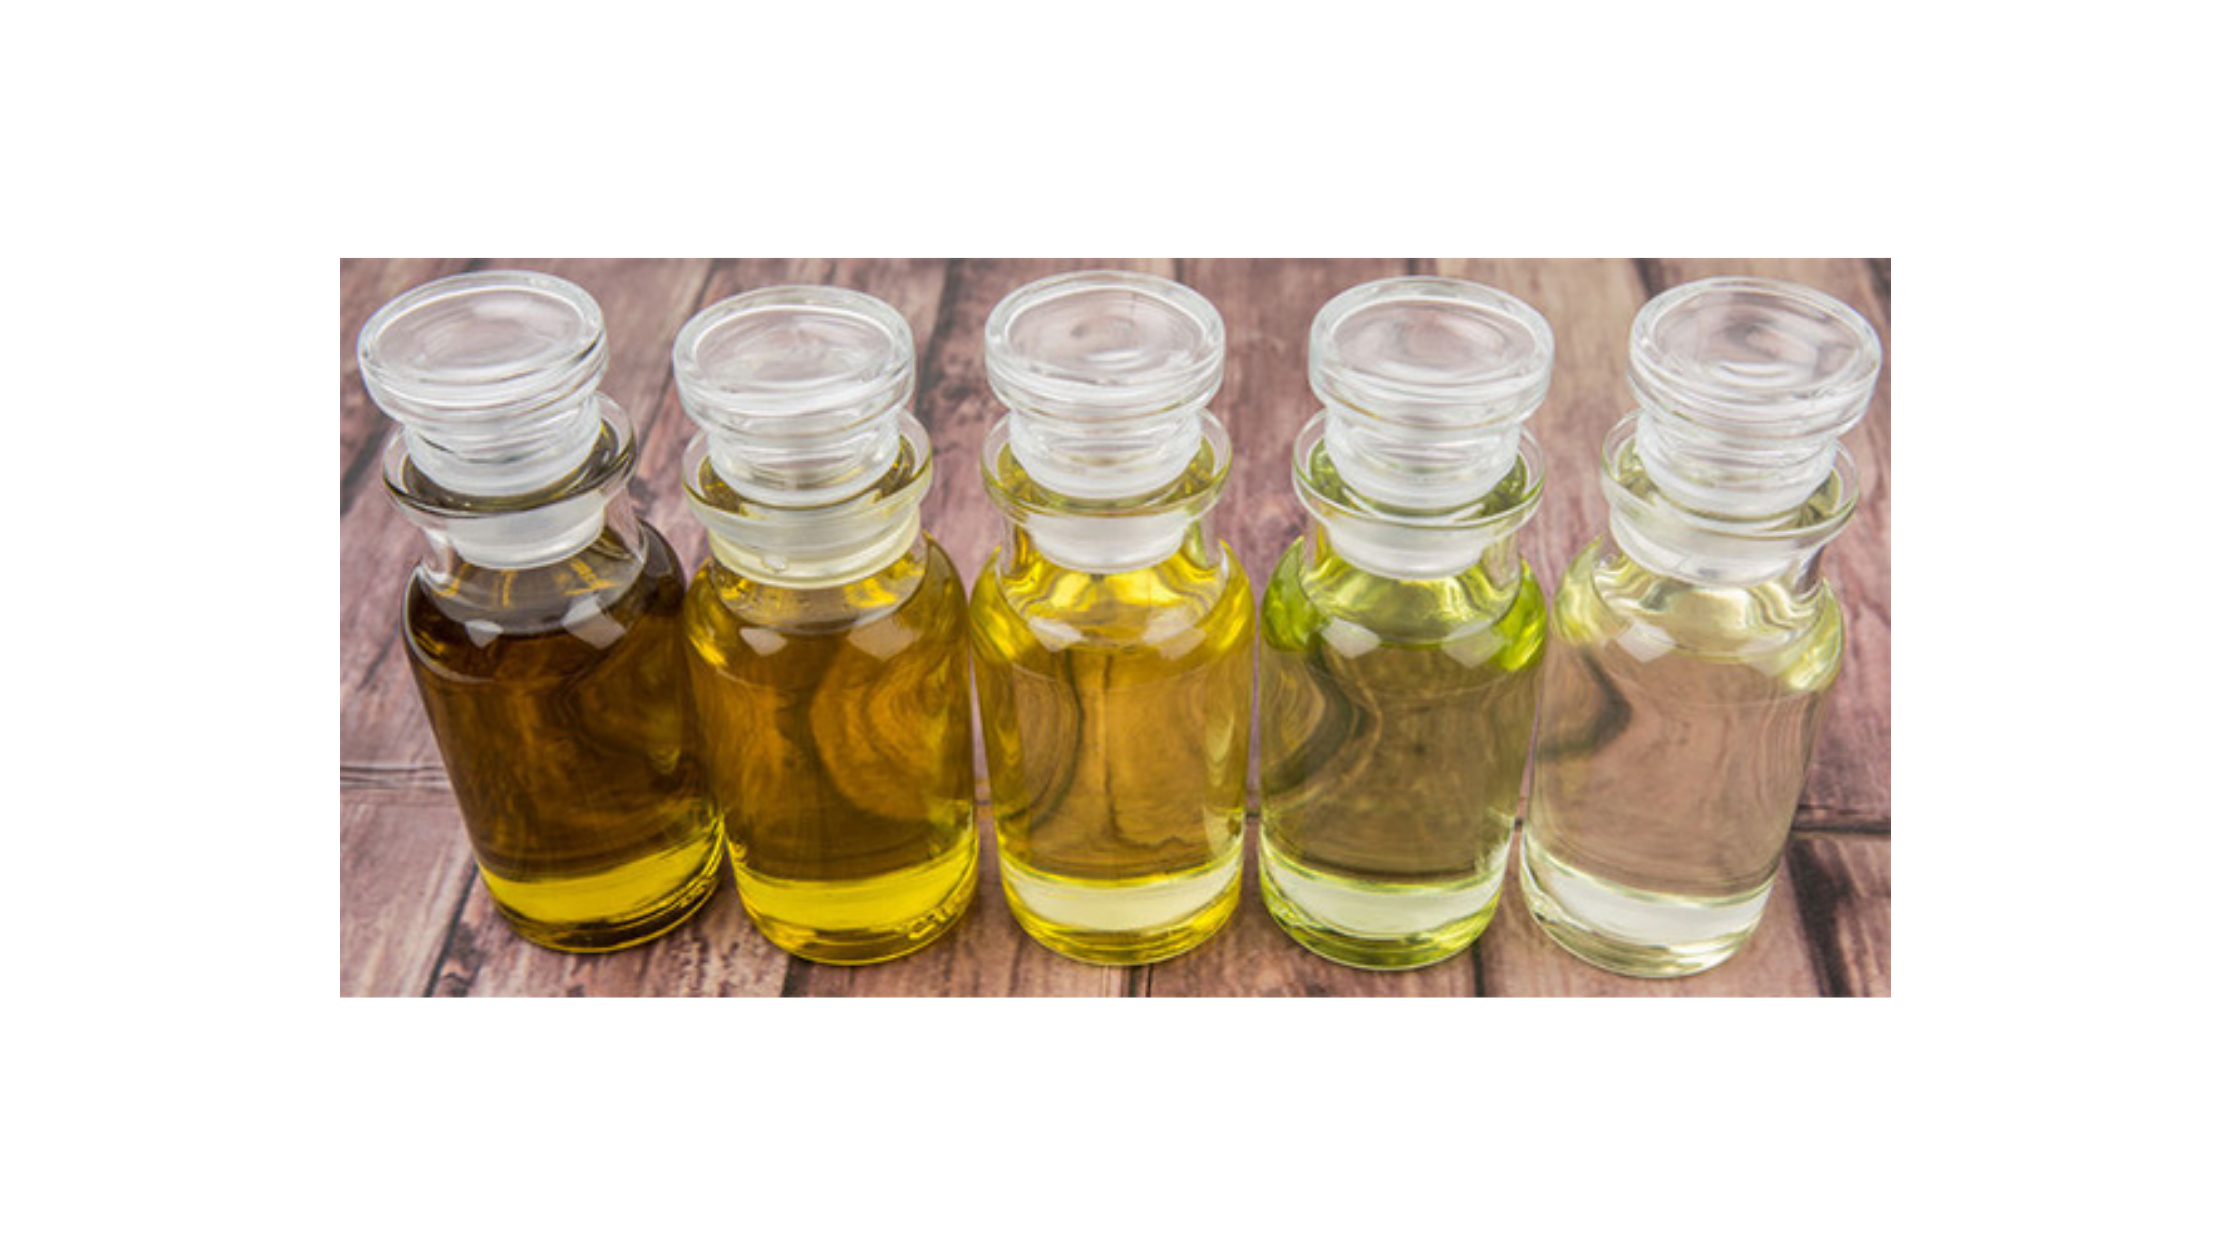 Ingredients of Pure CBD Softgels-A carrier oil